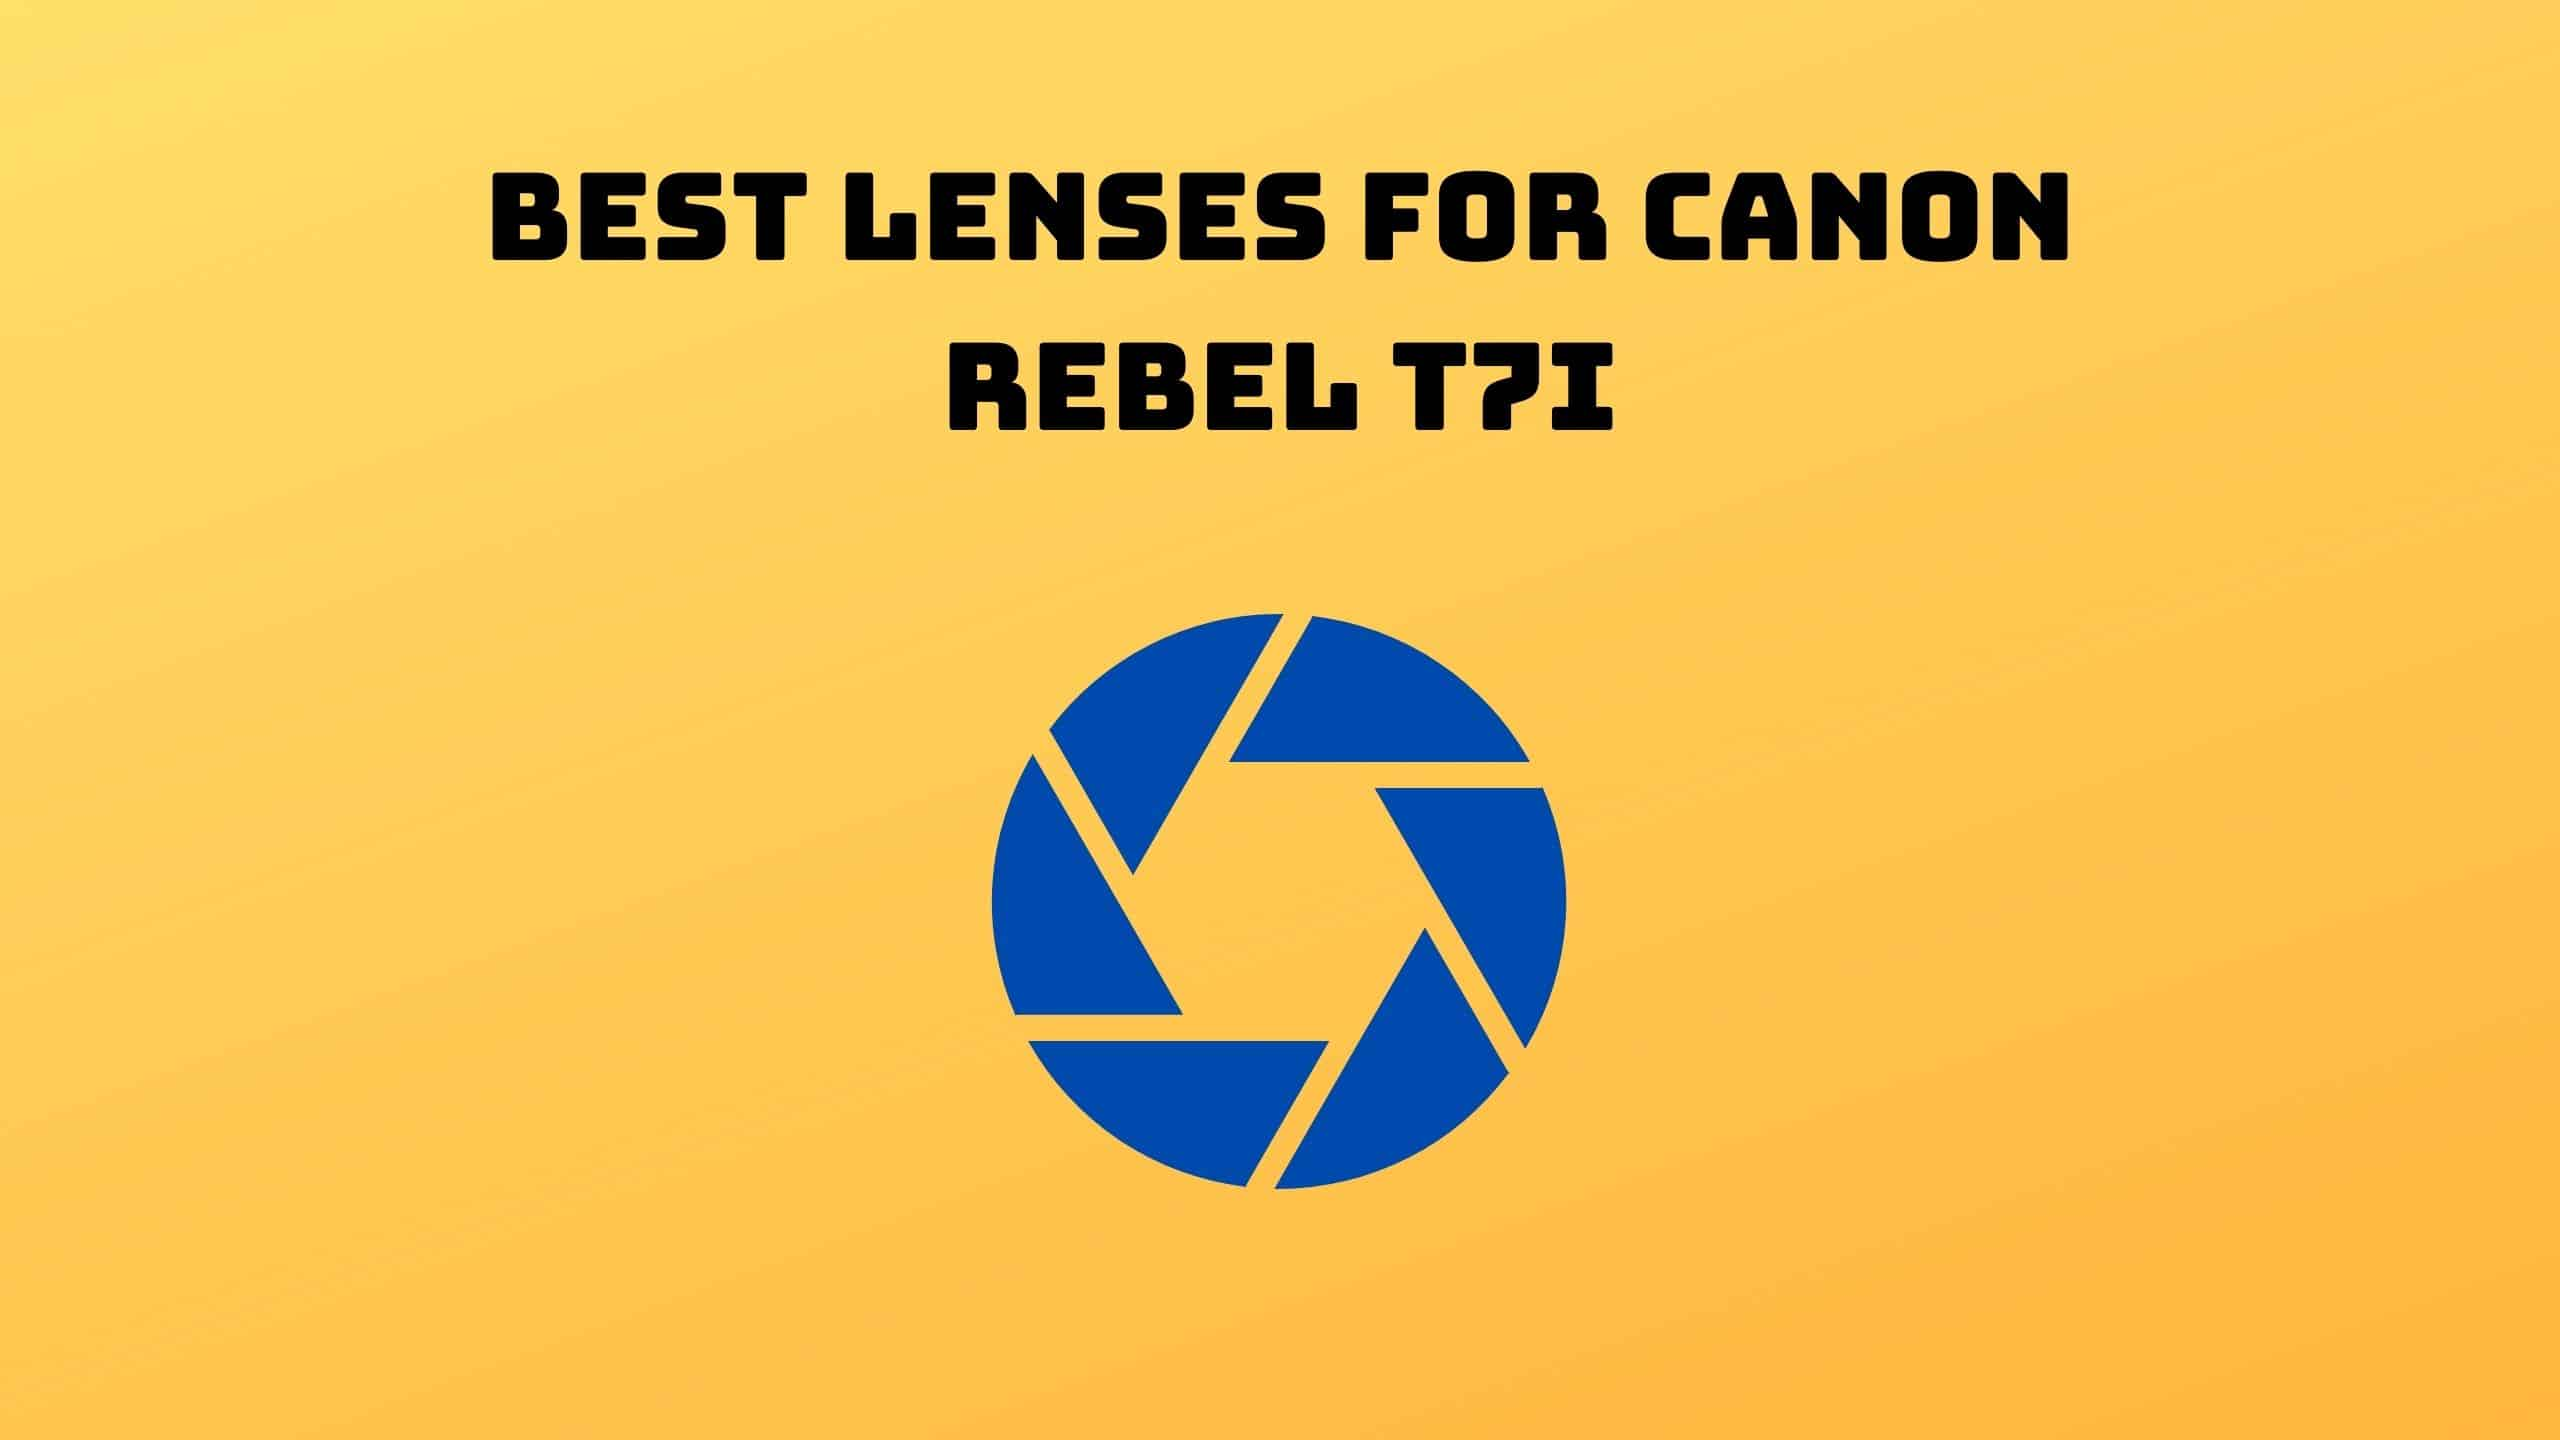 Best Lenses for Canon Rebel T7i (1)